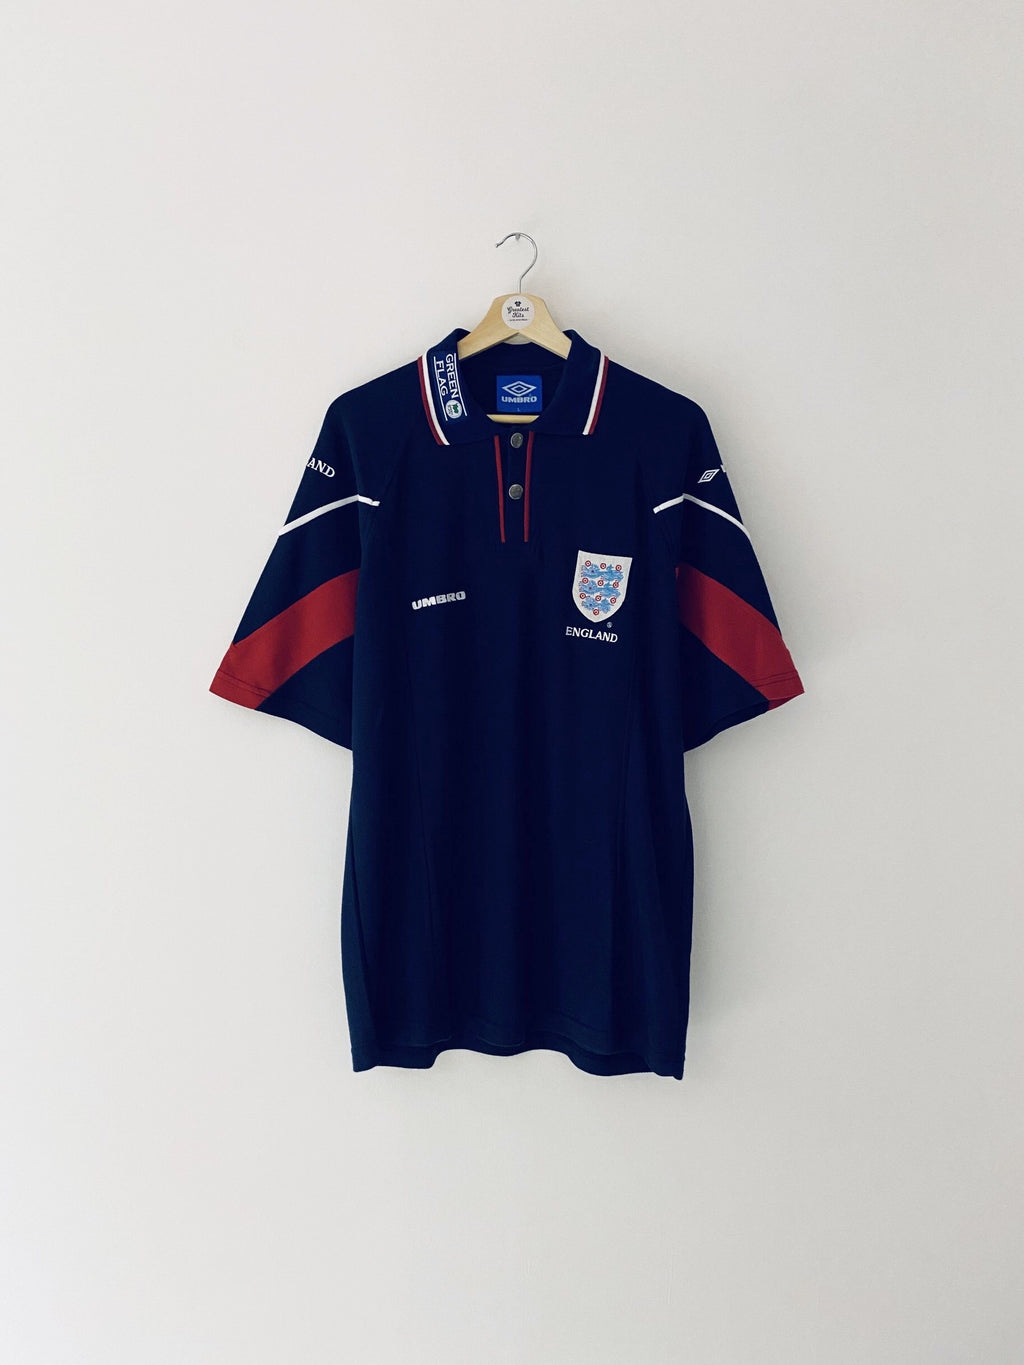 1997/99 England Polo Shirt (L) 9.5/10